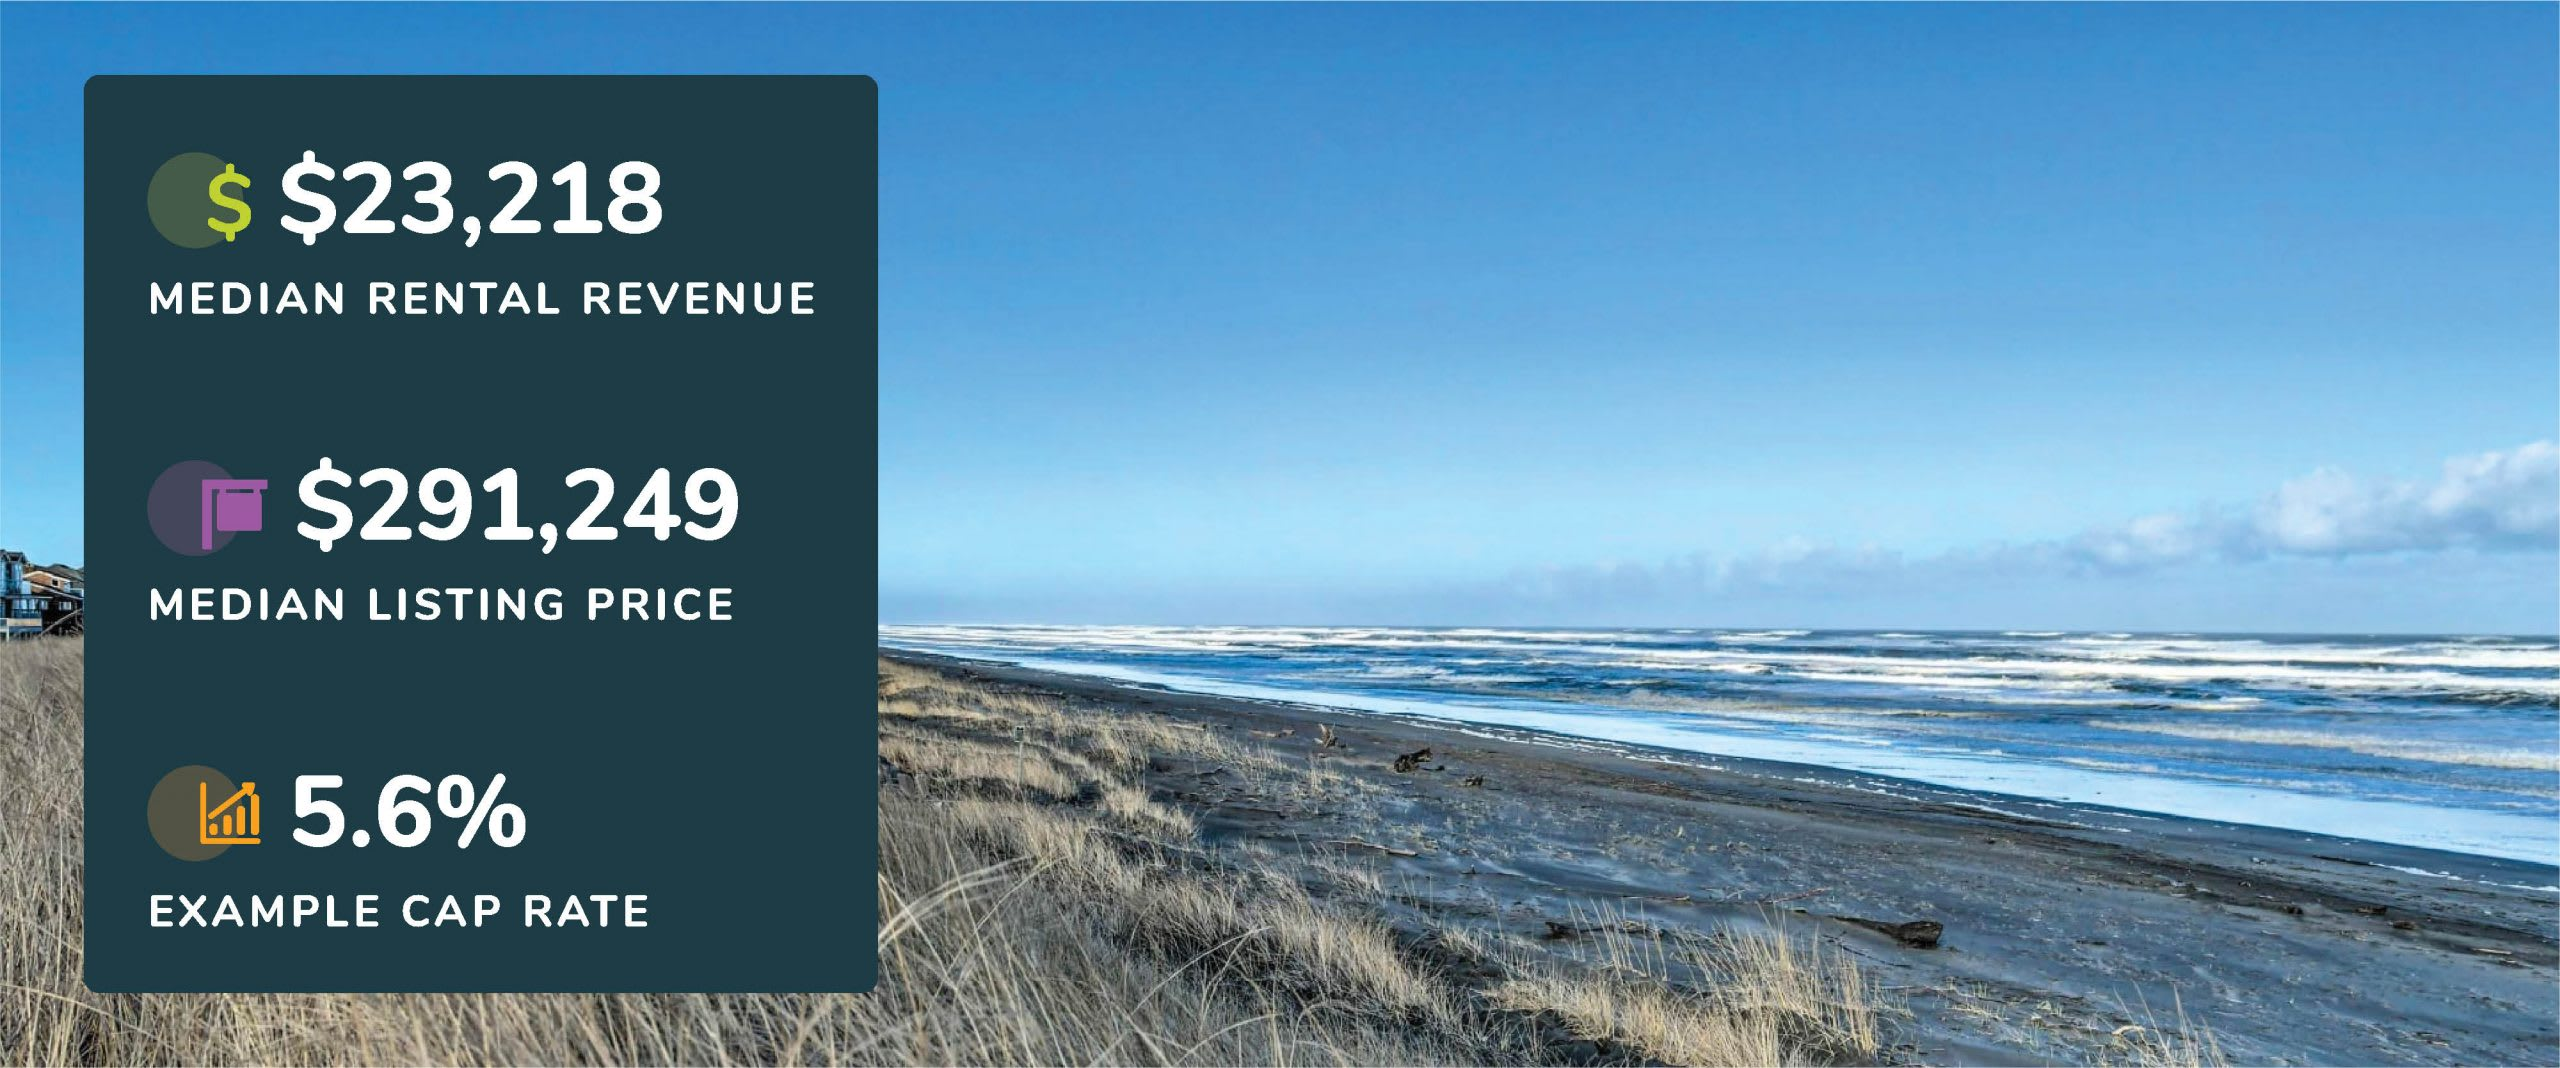 Graphic showing Ocean Shores, Washington median rental revenue, listing price, and example cap rate with a picture of a beach